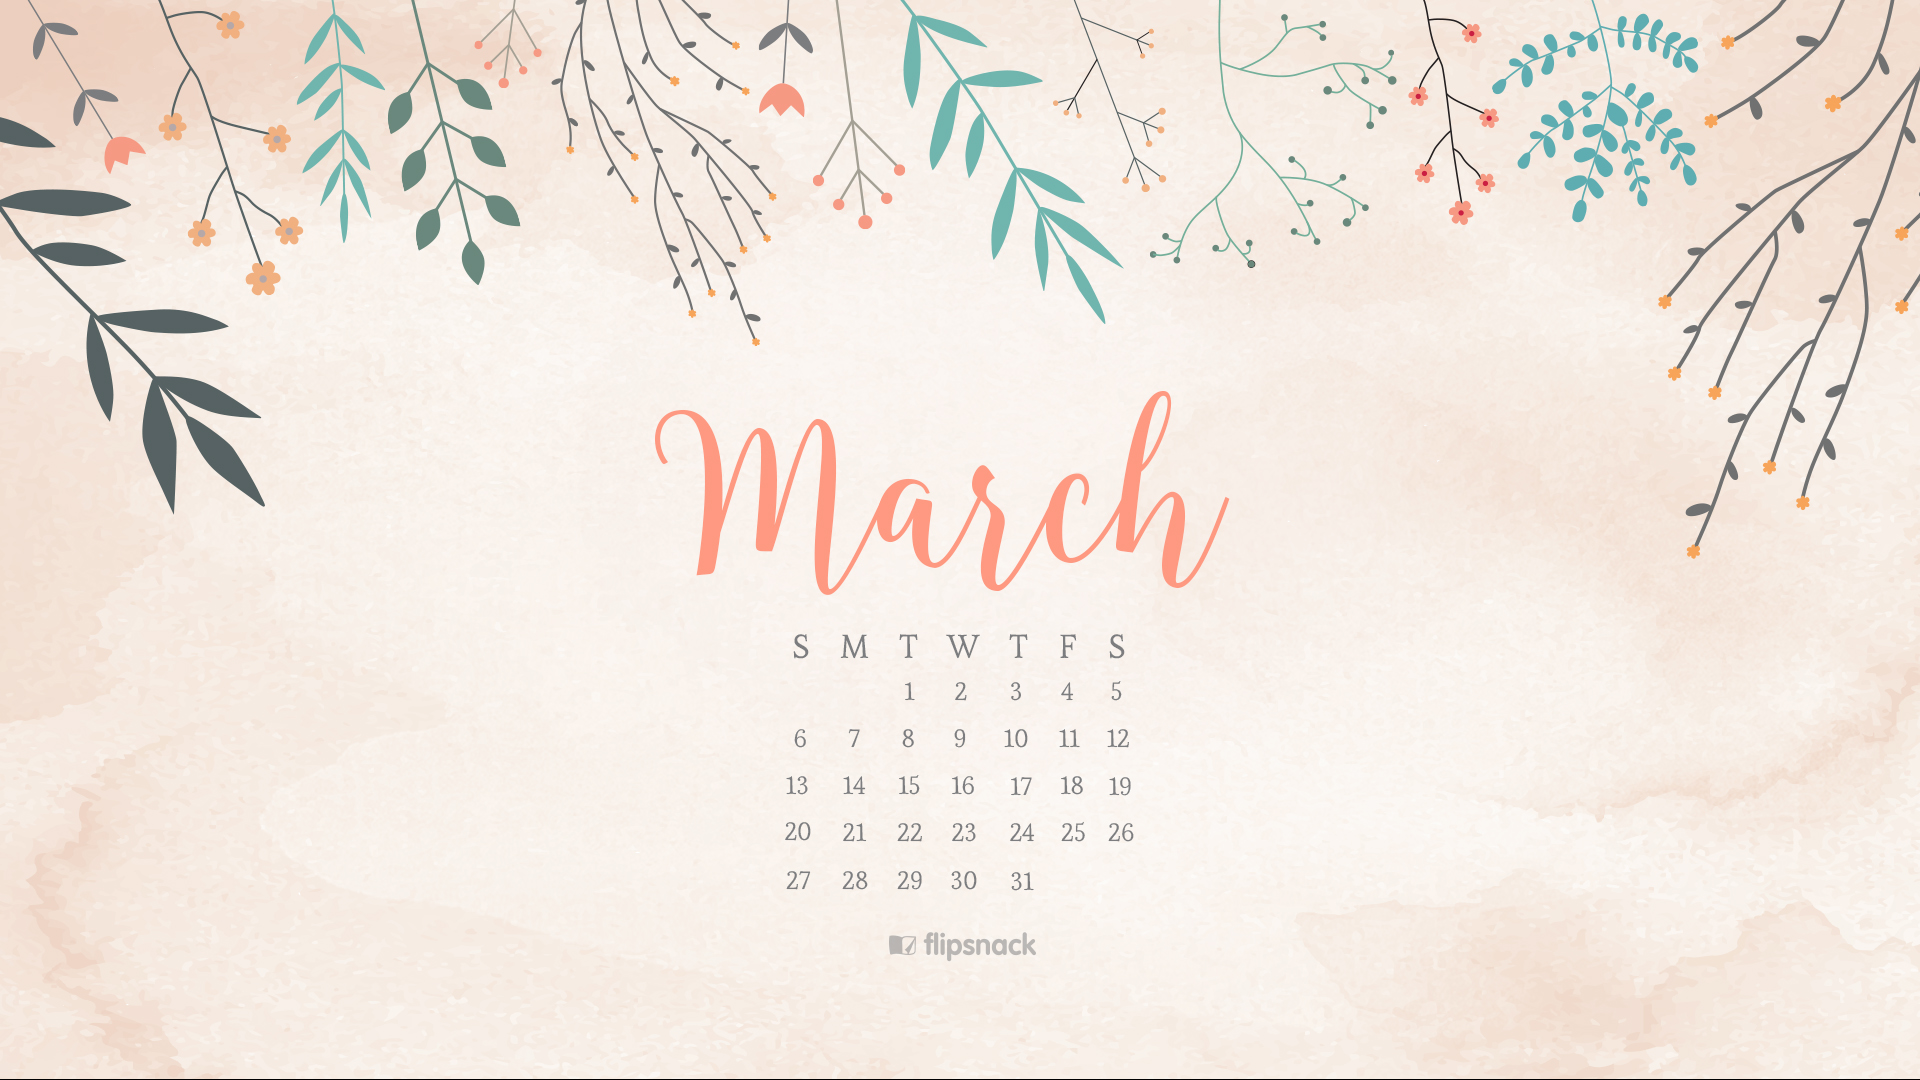 Calendar Computer Wallpaper : March free calendar wallpaper desktop background